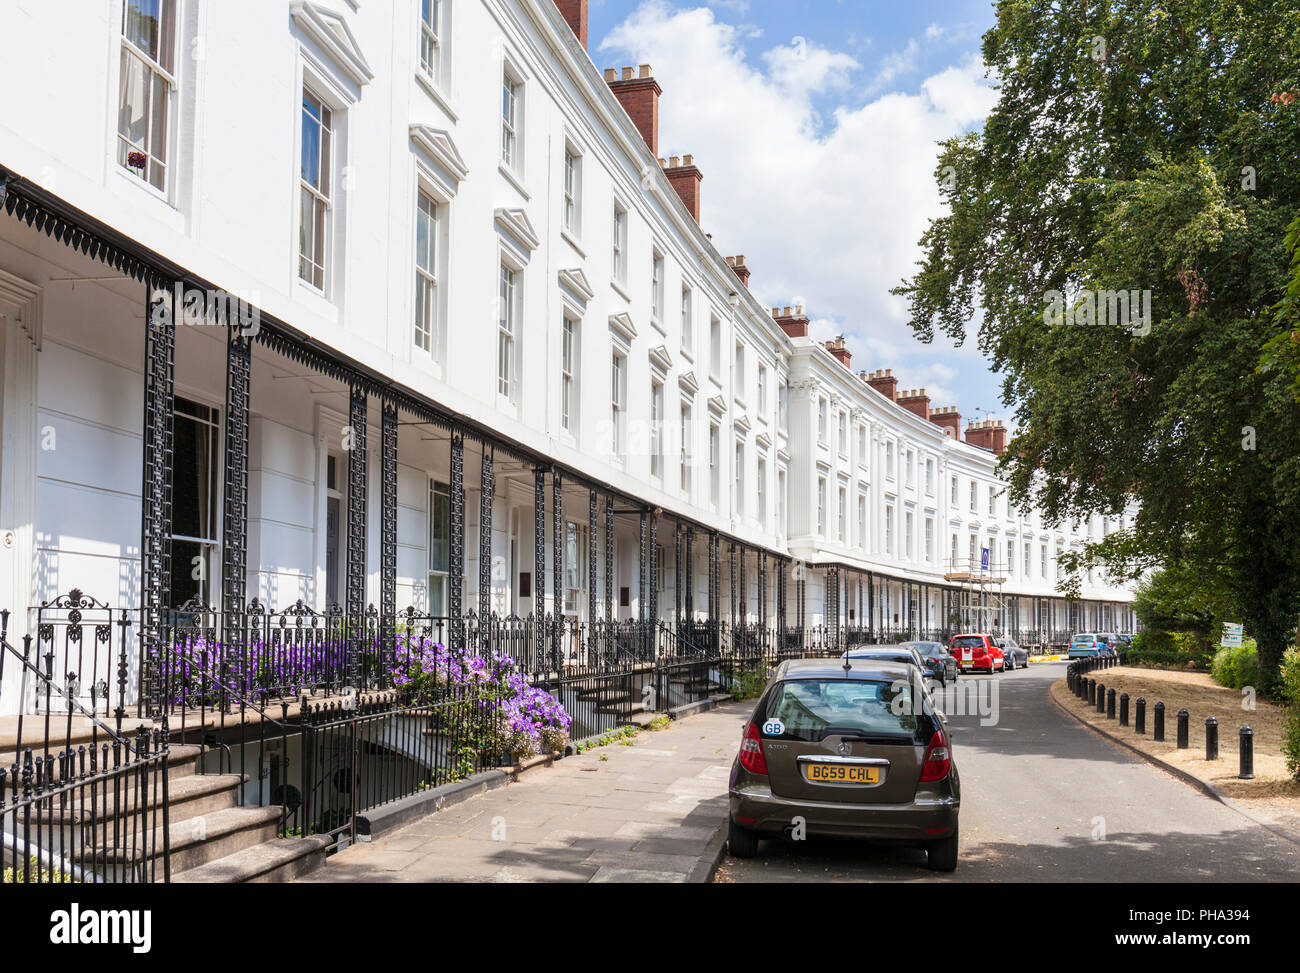 Leamington spa Royal Leamington spa town architecture Régence et d'un balcon en ferronnerie Leamington Spa Warwickshire Angleterre uk go europe Photo Stock